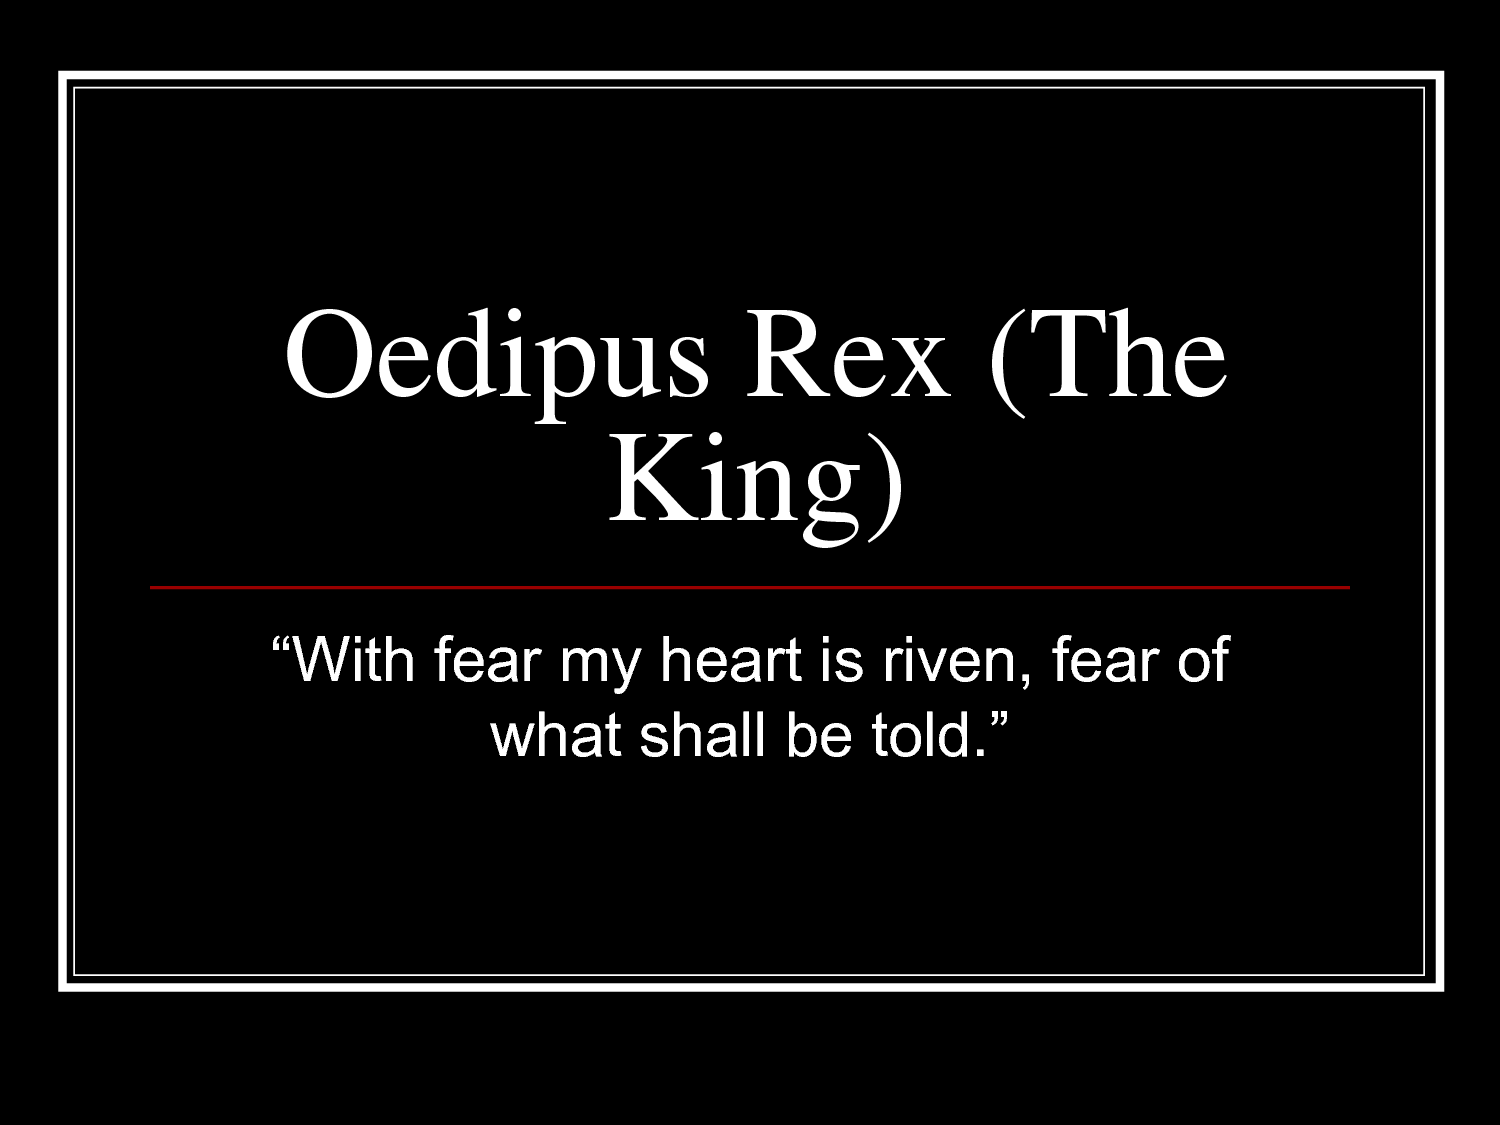 oedipus suffering essay You are welcome to read the oedipus essay outline the hero undergoing suffering which he does not deserve and the hero having a noble status in the society.